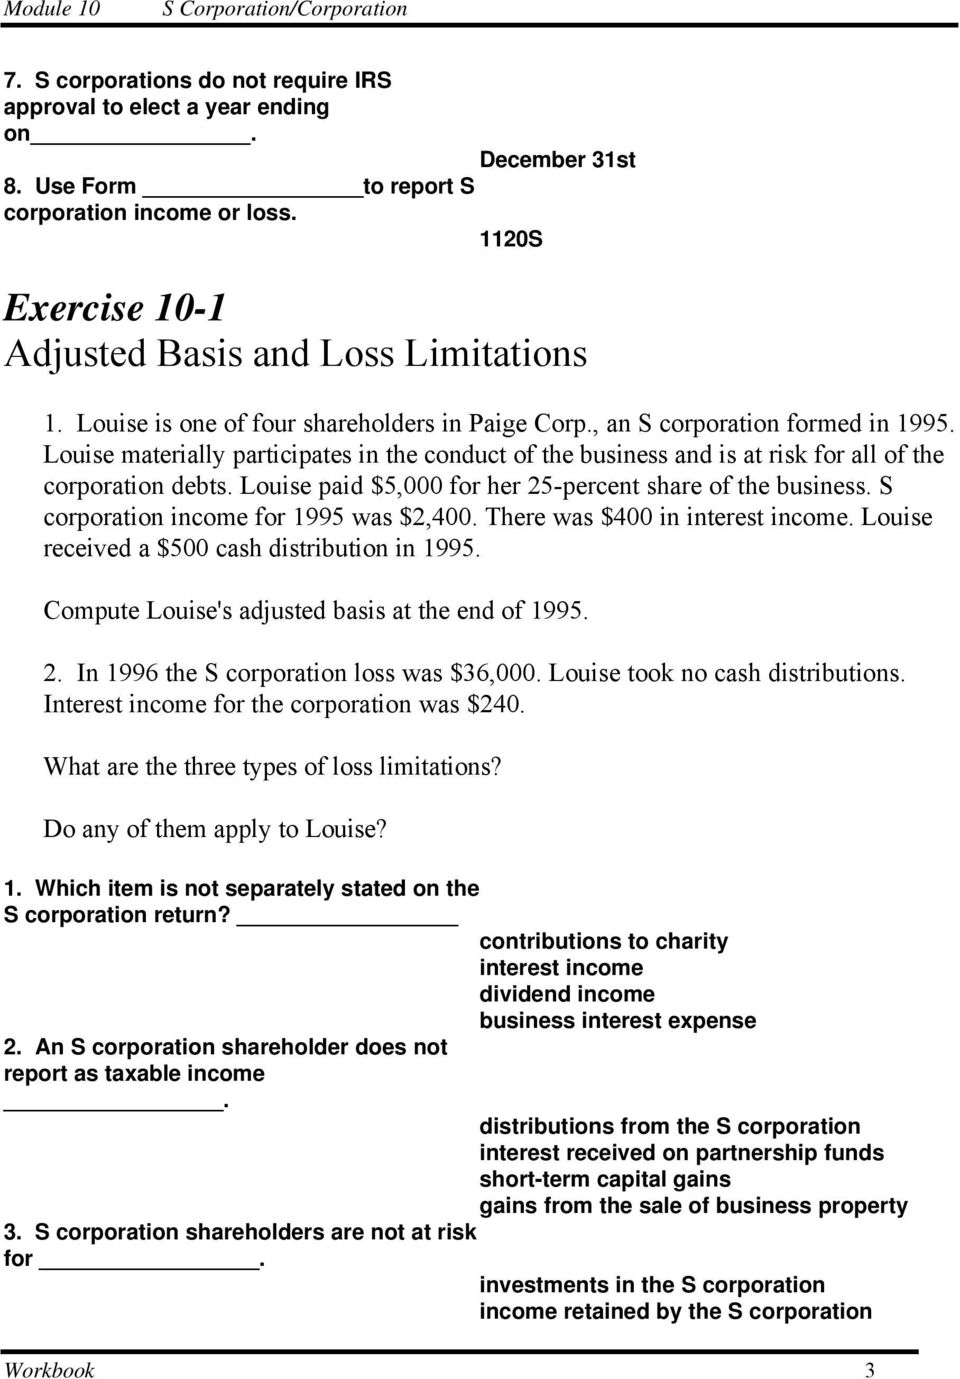 Louise paid $5,000 for her 25-percent share of the business. S corporation income for 1995 was $2,400. There was $400 in interest income. Louise received a $500 cash distribution in 1995.